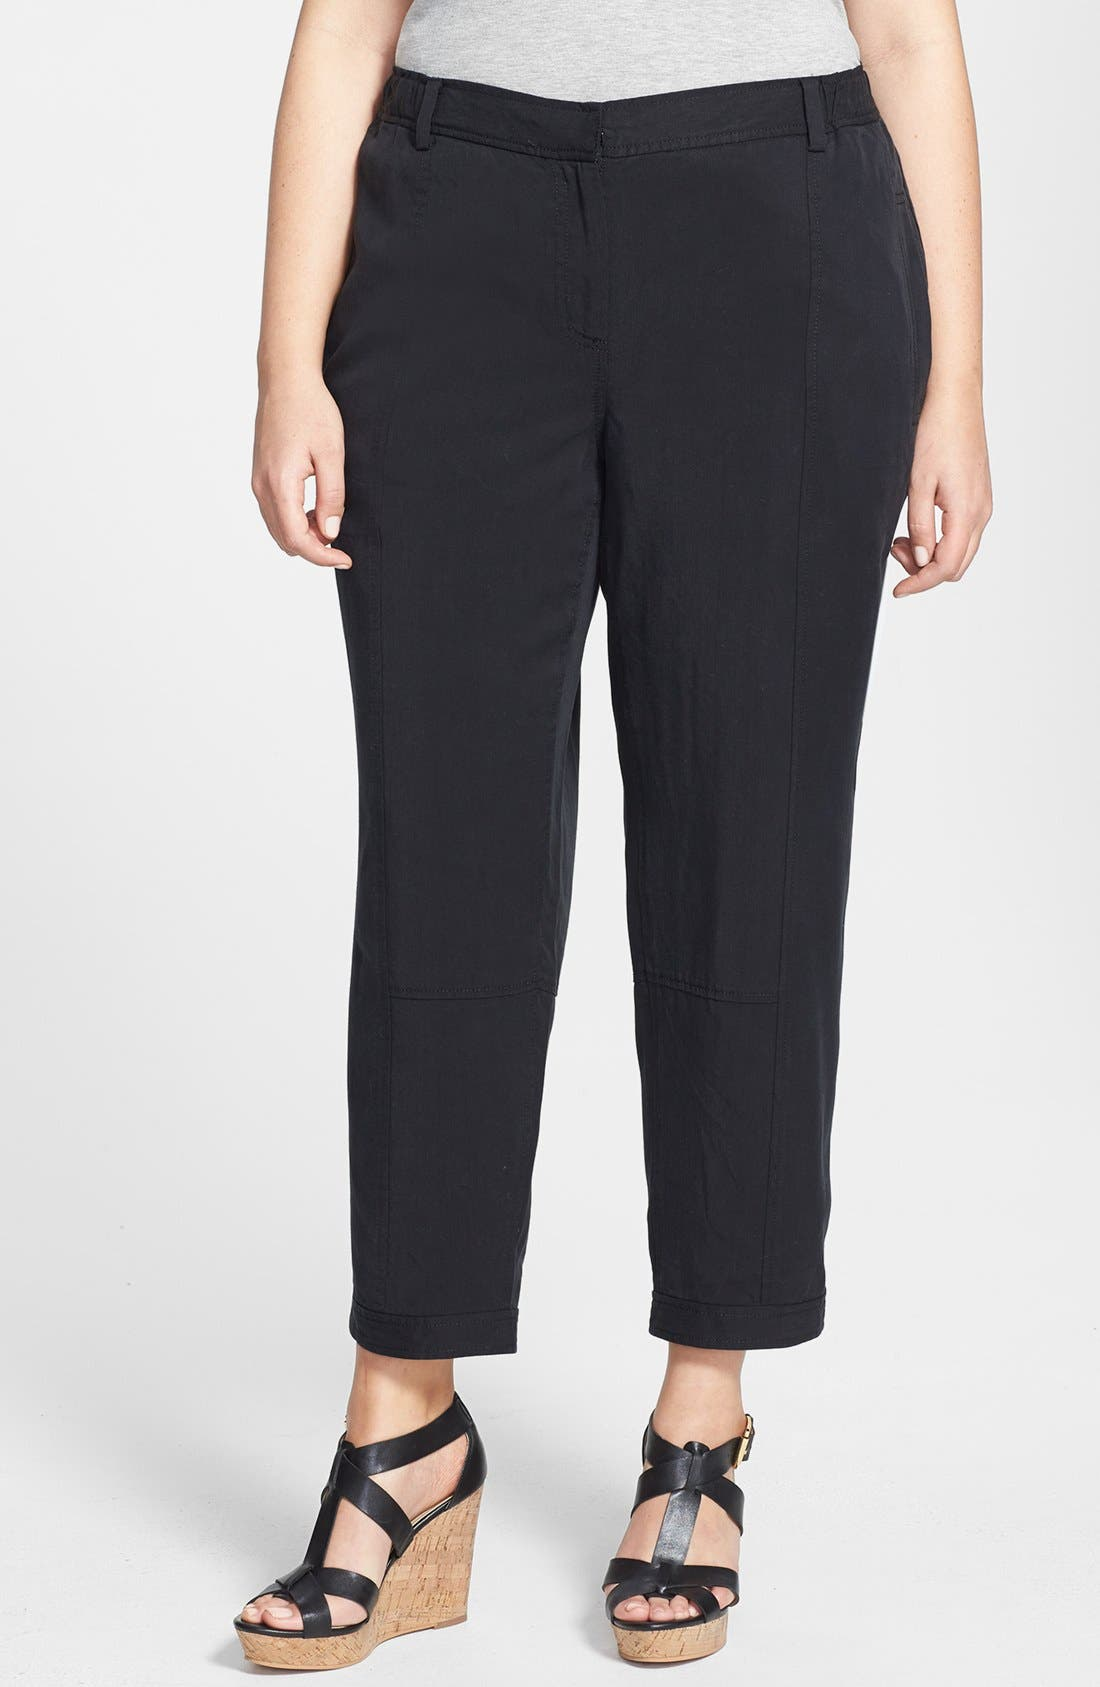 Alternate Image 1 Selected - Eileen Fisher Tencel® Ankle Pants (Plus Size)